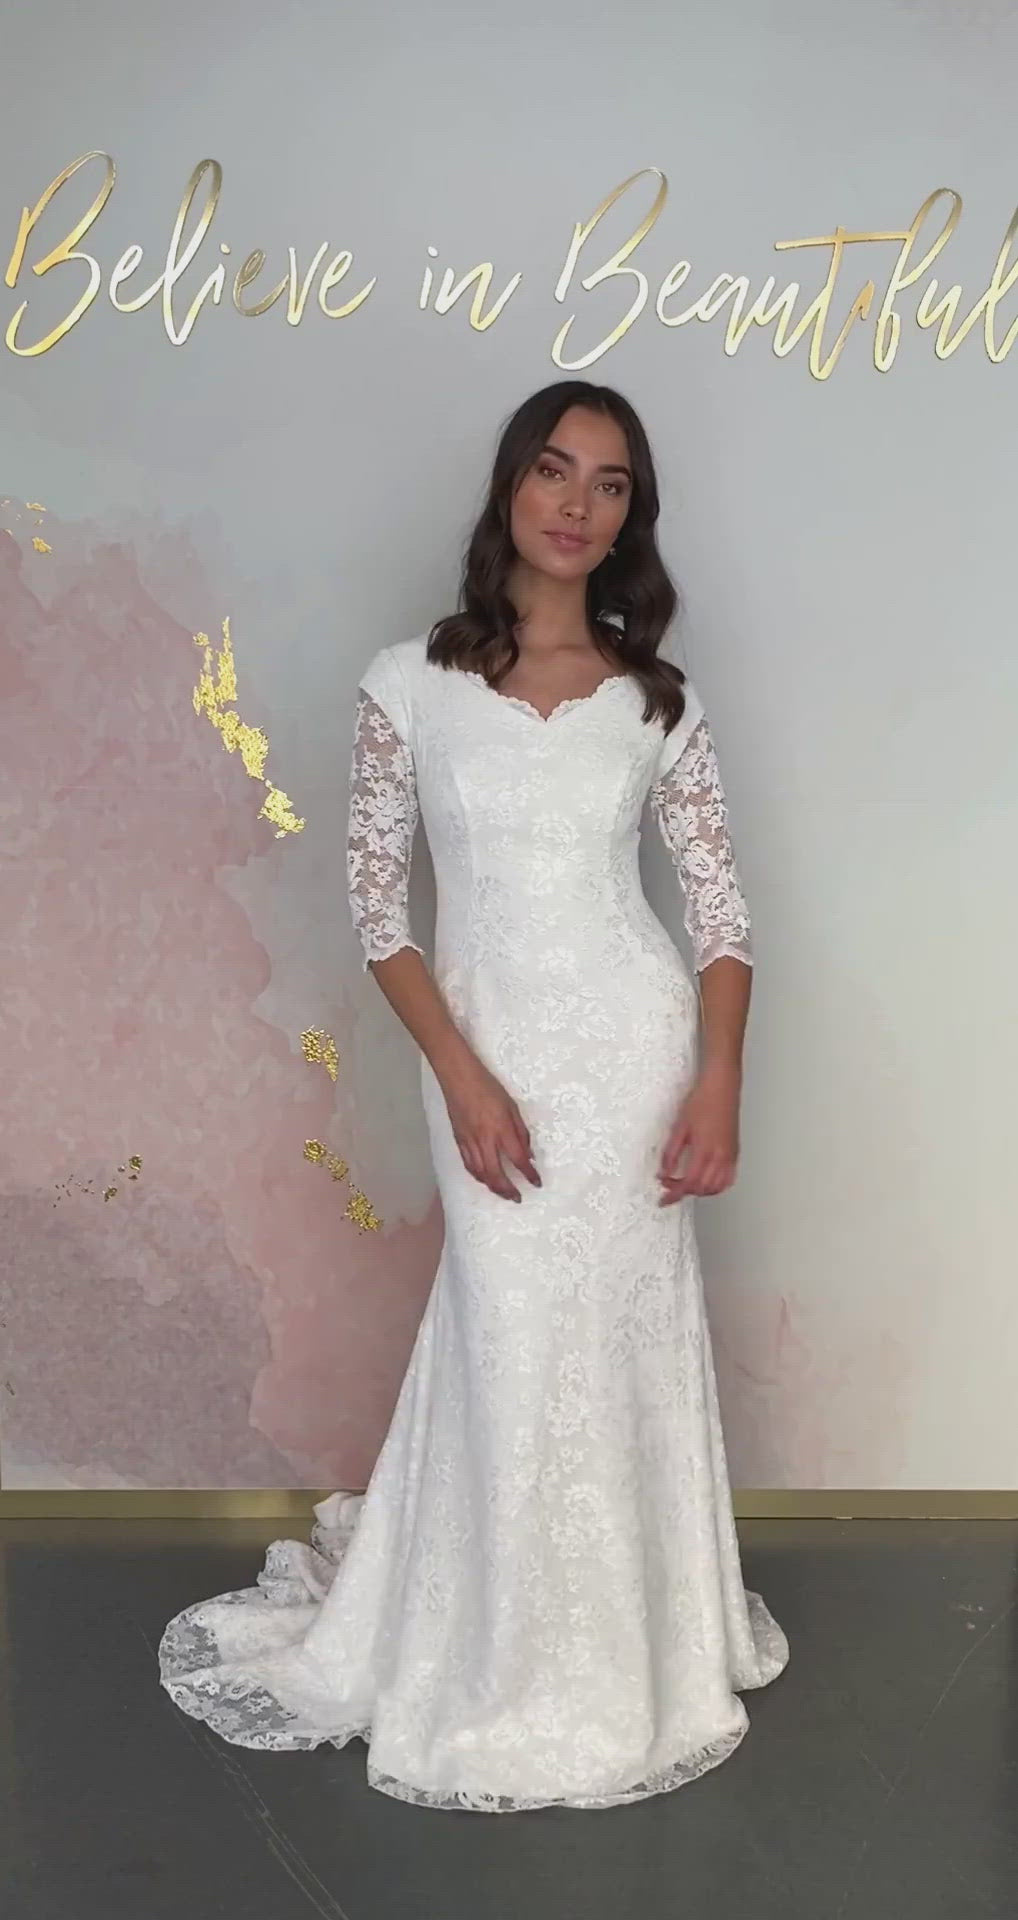 A video featuring our Amanza wedding dress and its sheath fit with all-over Chantilly lace and scalloped neckline detailing.